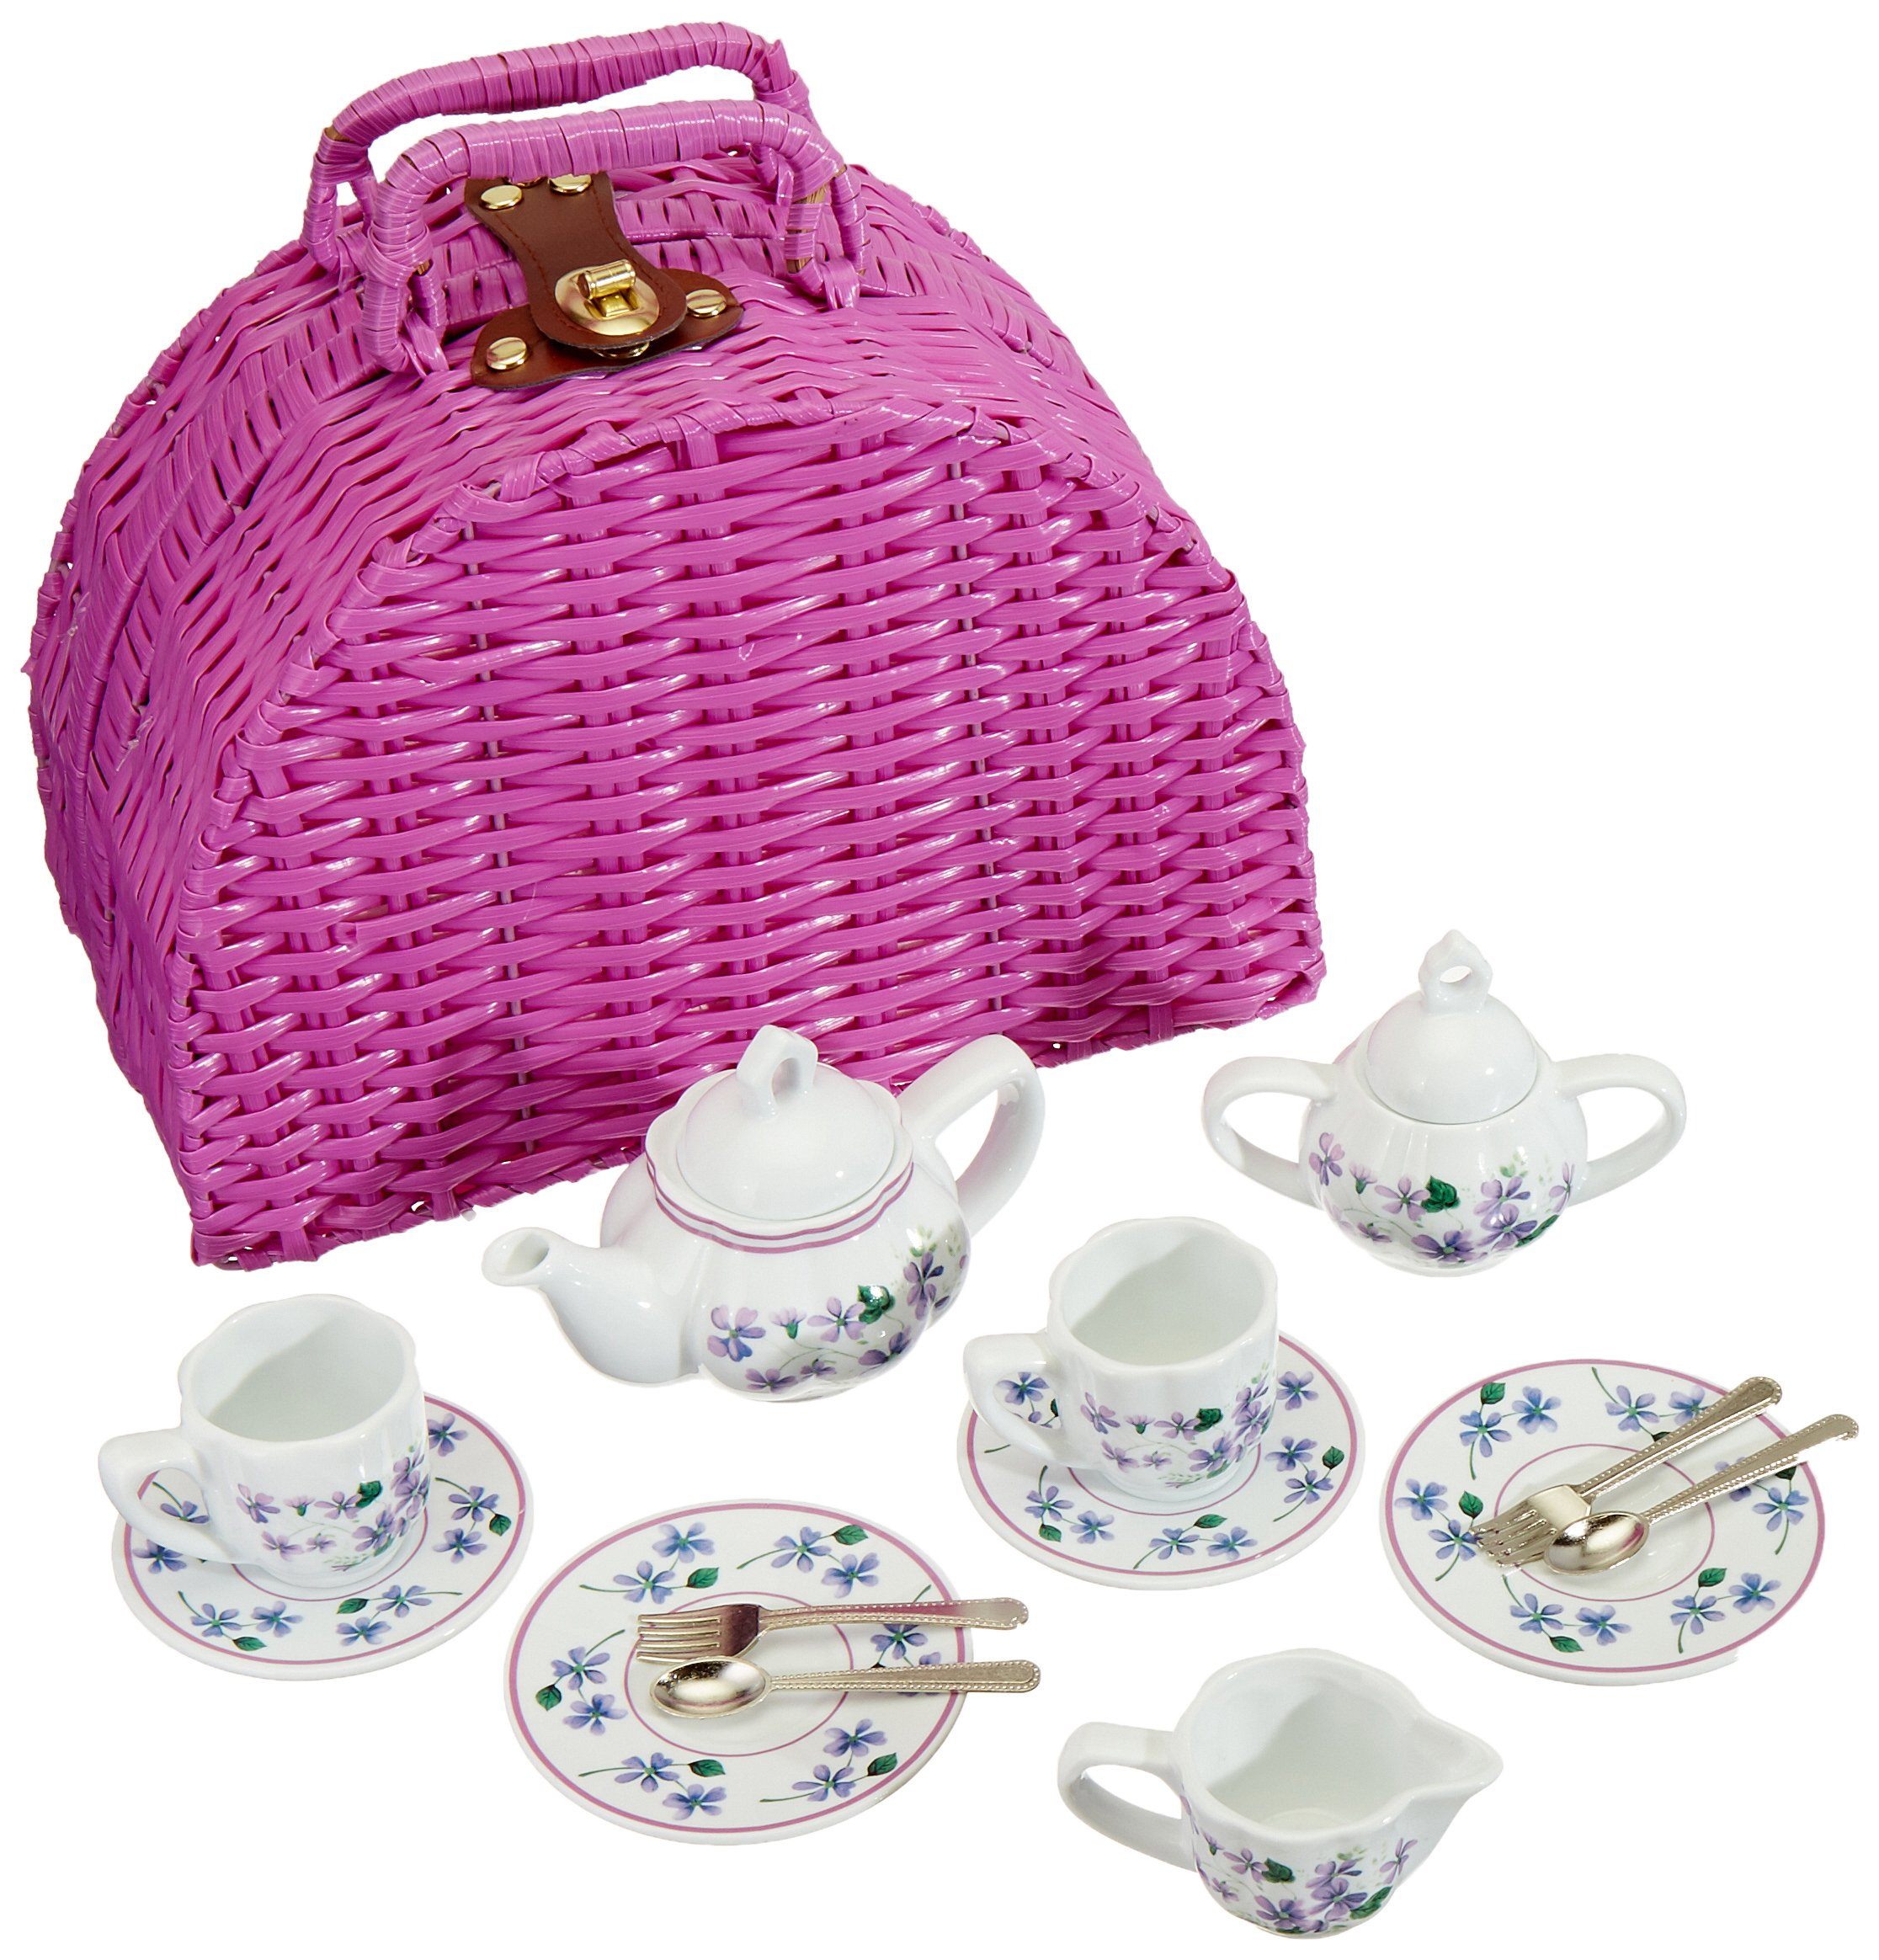 Delton Products Dollies Tea Set in Basket, Purple/Violet by Delton Products (Image #2)